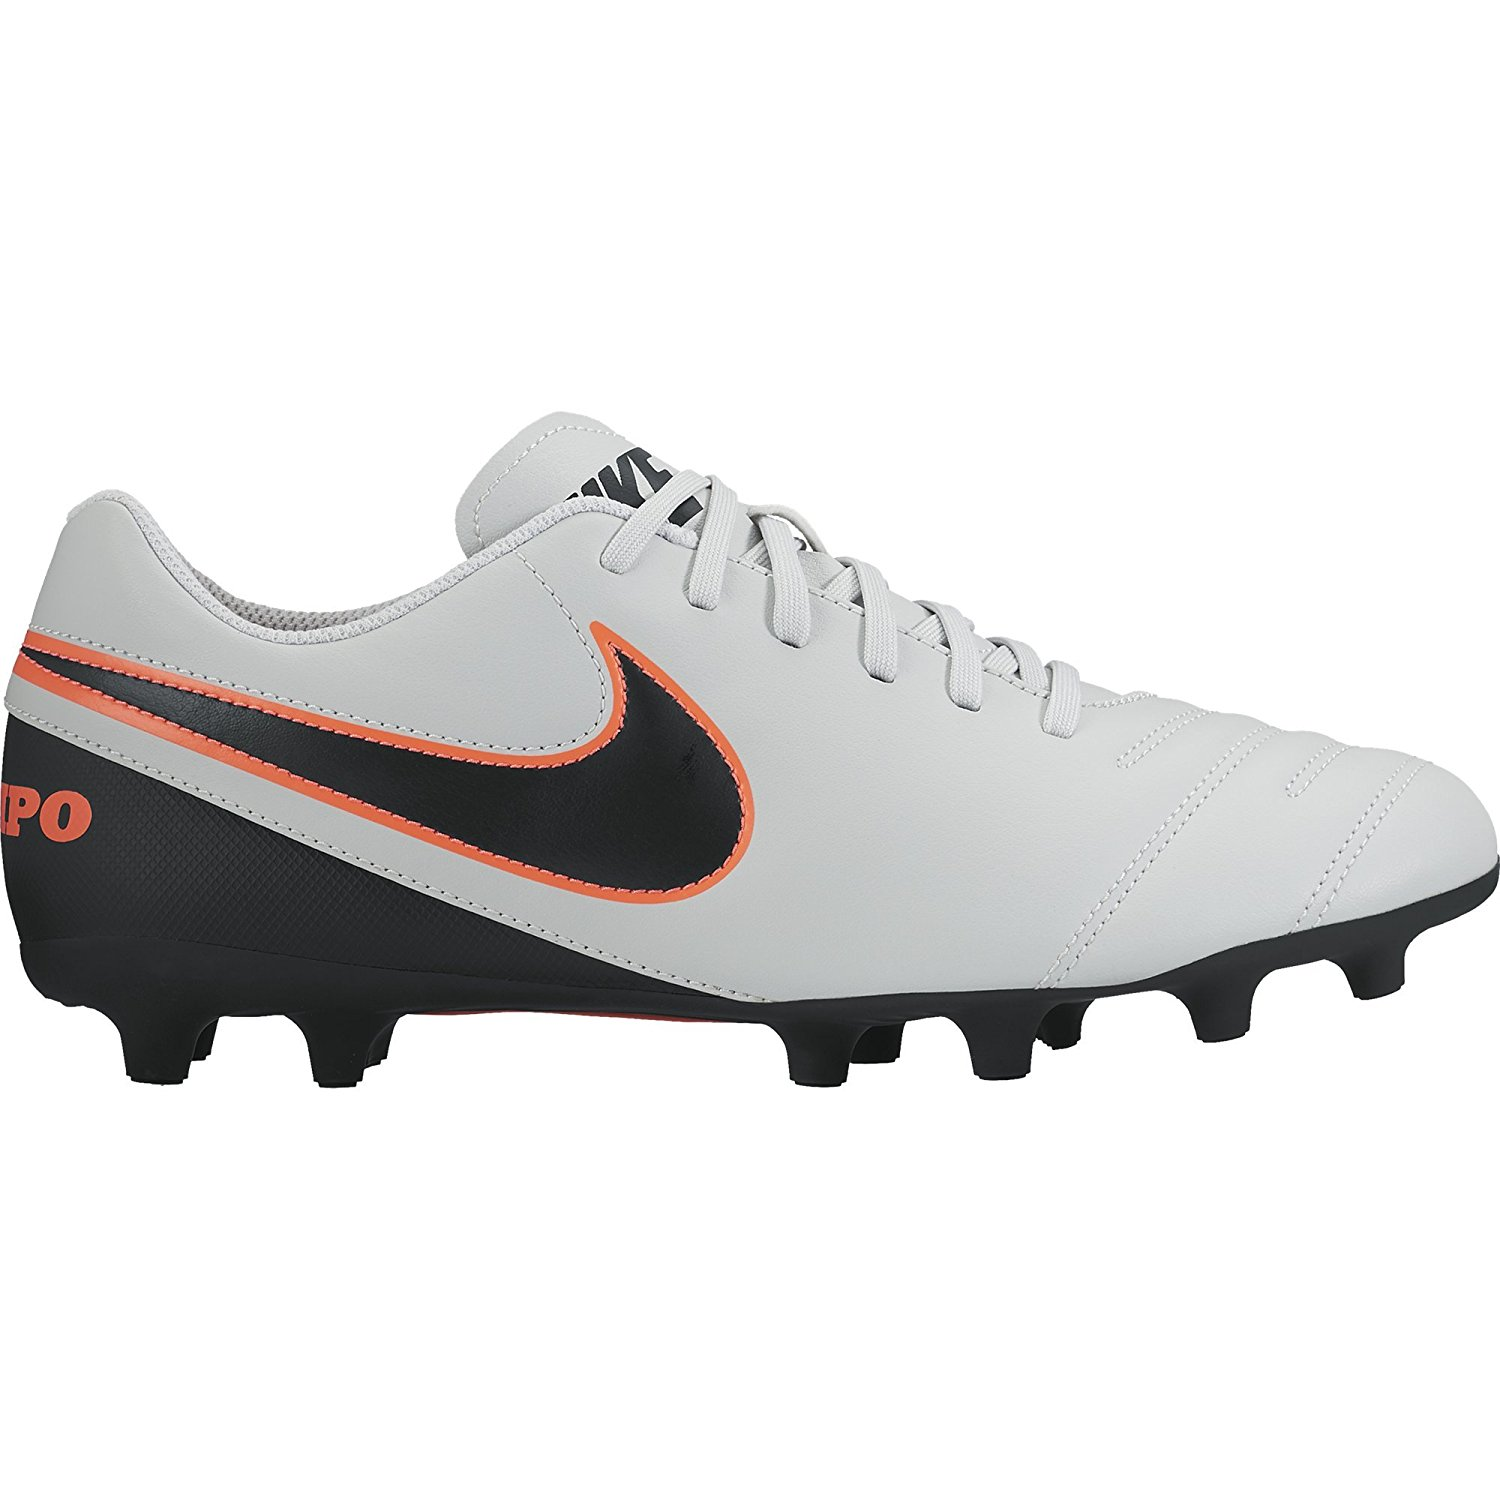 ec475ca7ab3 Get Quotations · New Nike Tiempo Rio lll FG Size Men 11.5 Soccer Cleats  Plt Blk Orng